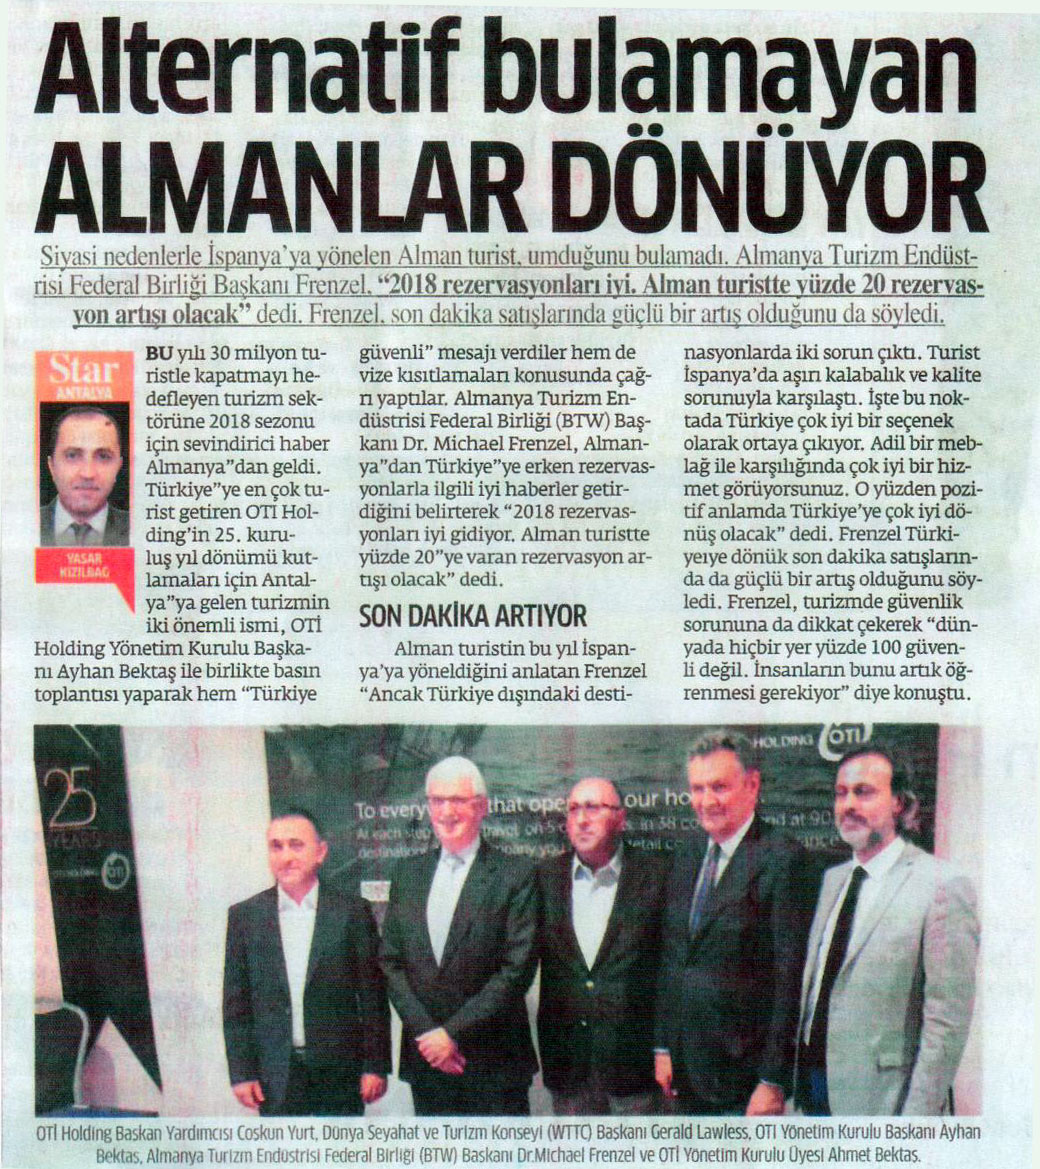 Alternatif Bulamayan ALMANLAR DONUYOR